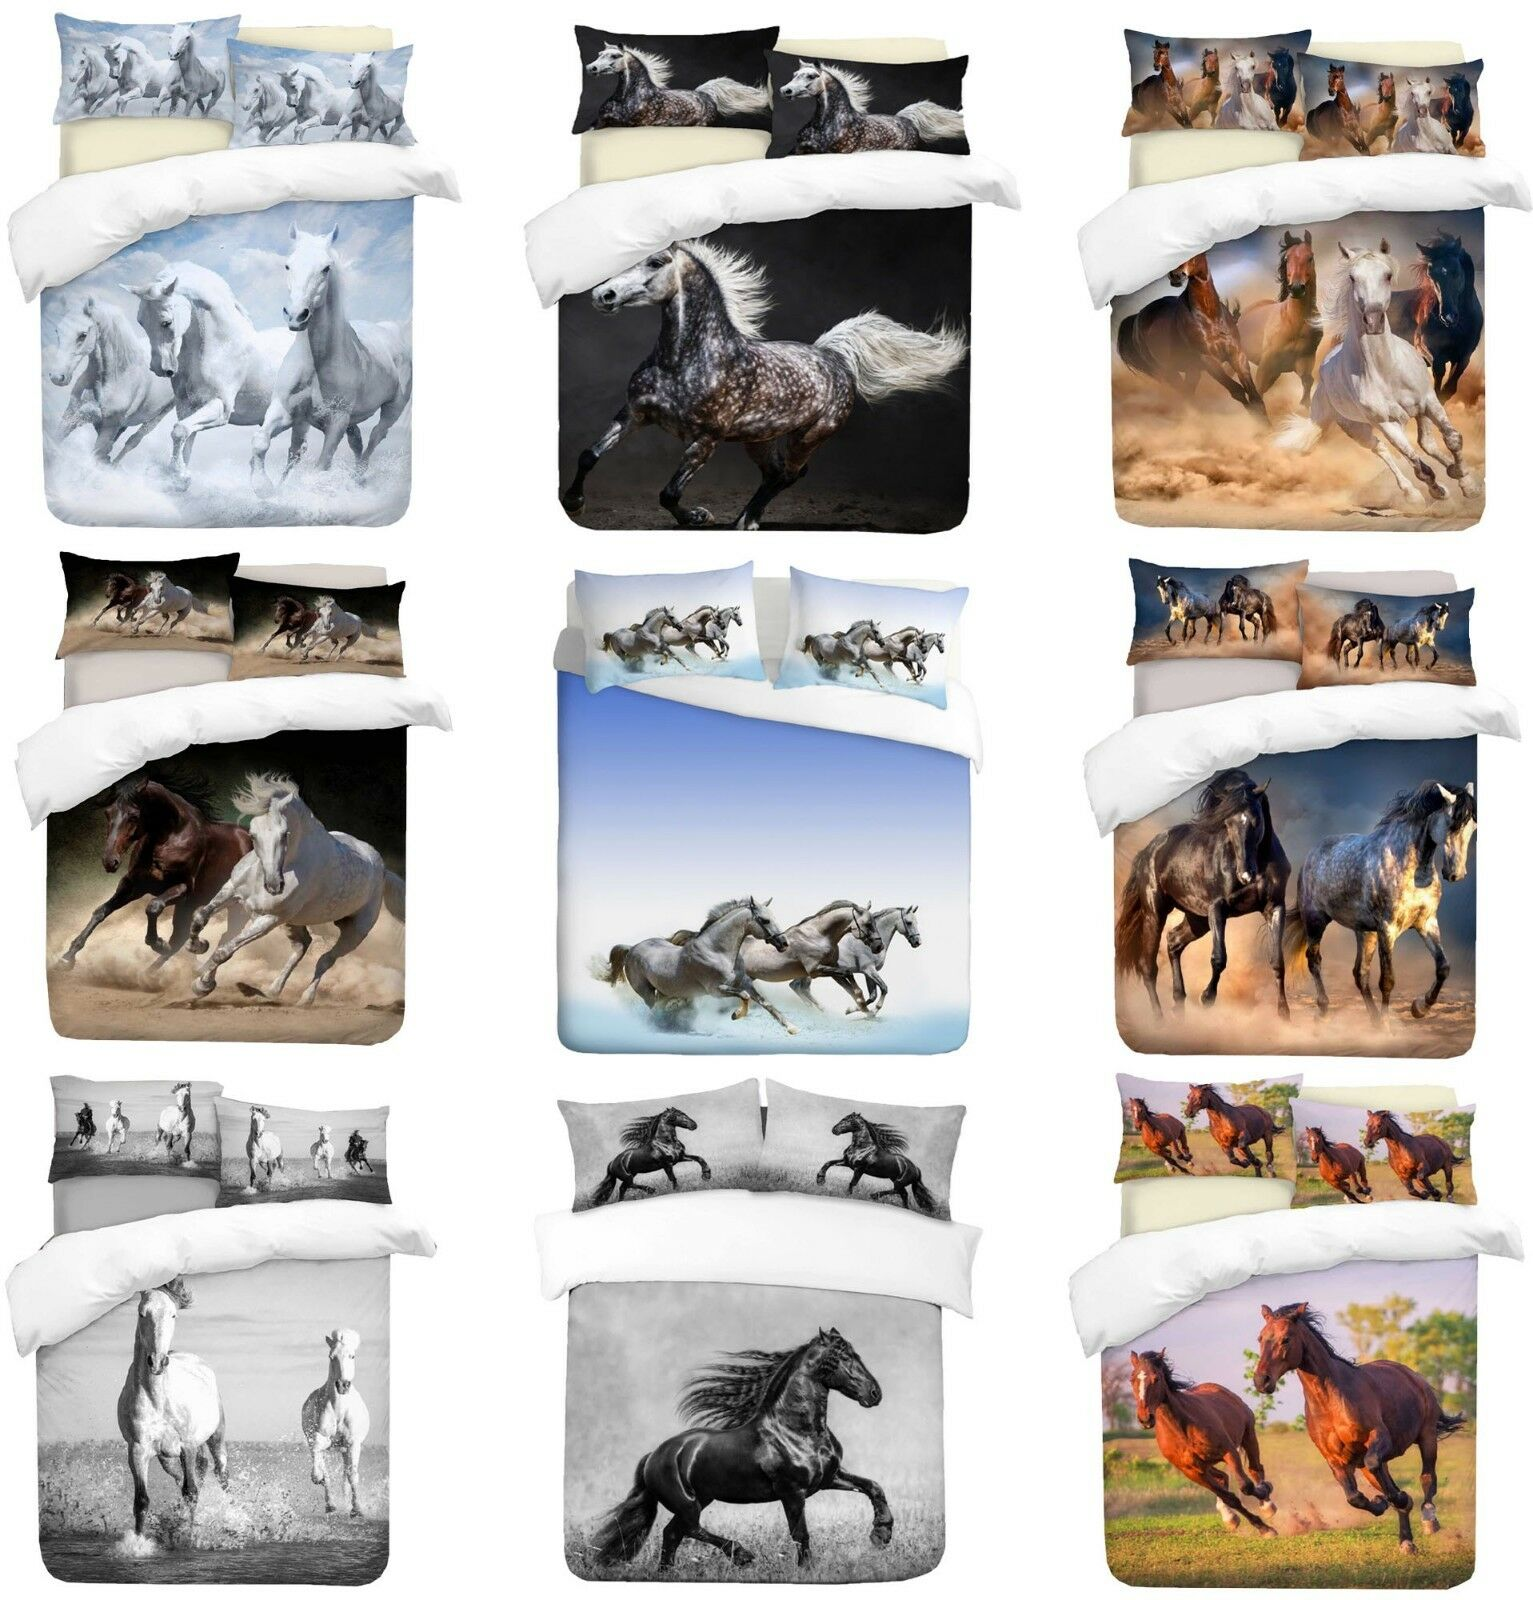 3D Horses Theme Photo Print Duvet Quilt Cover With Pillowcases Bedding Set